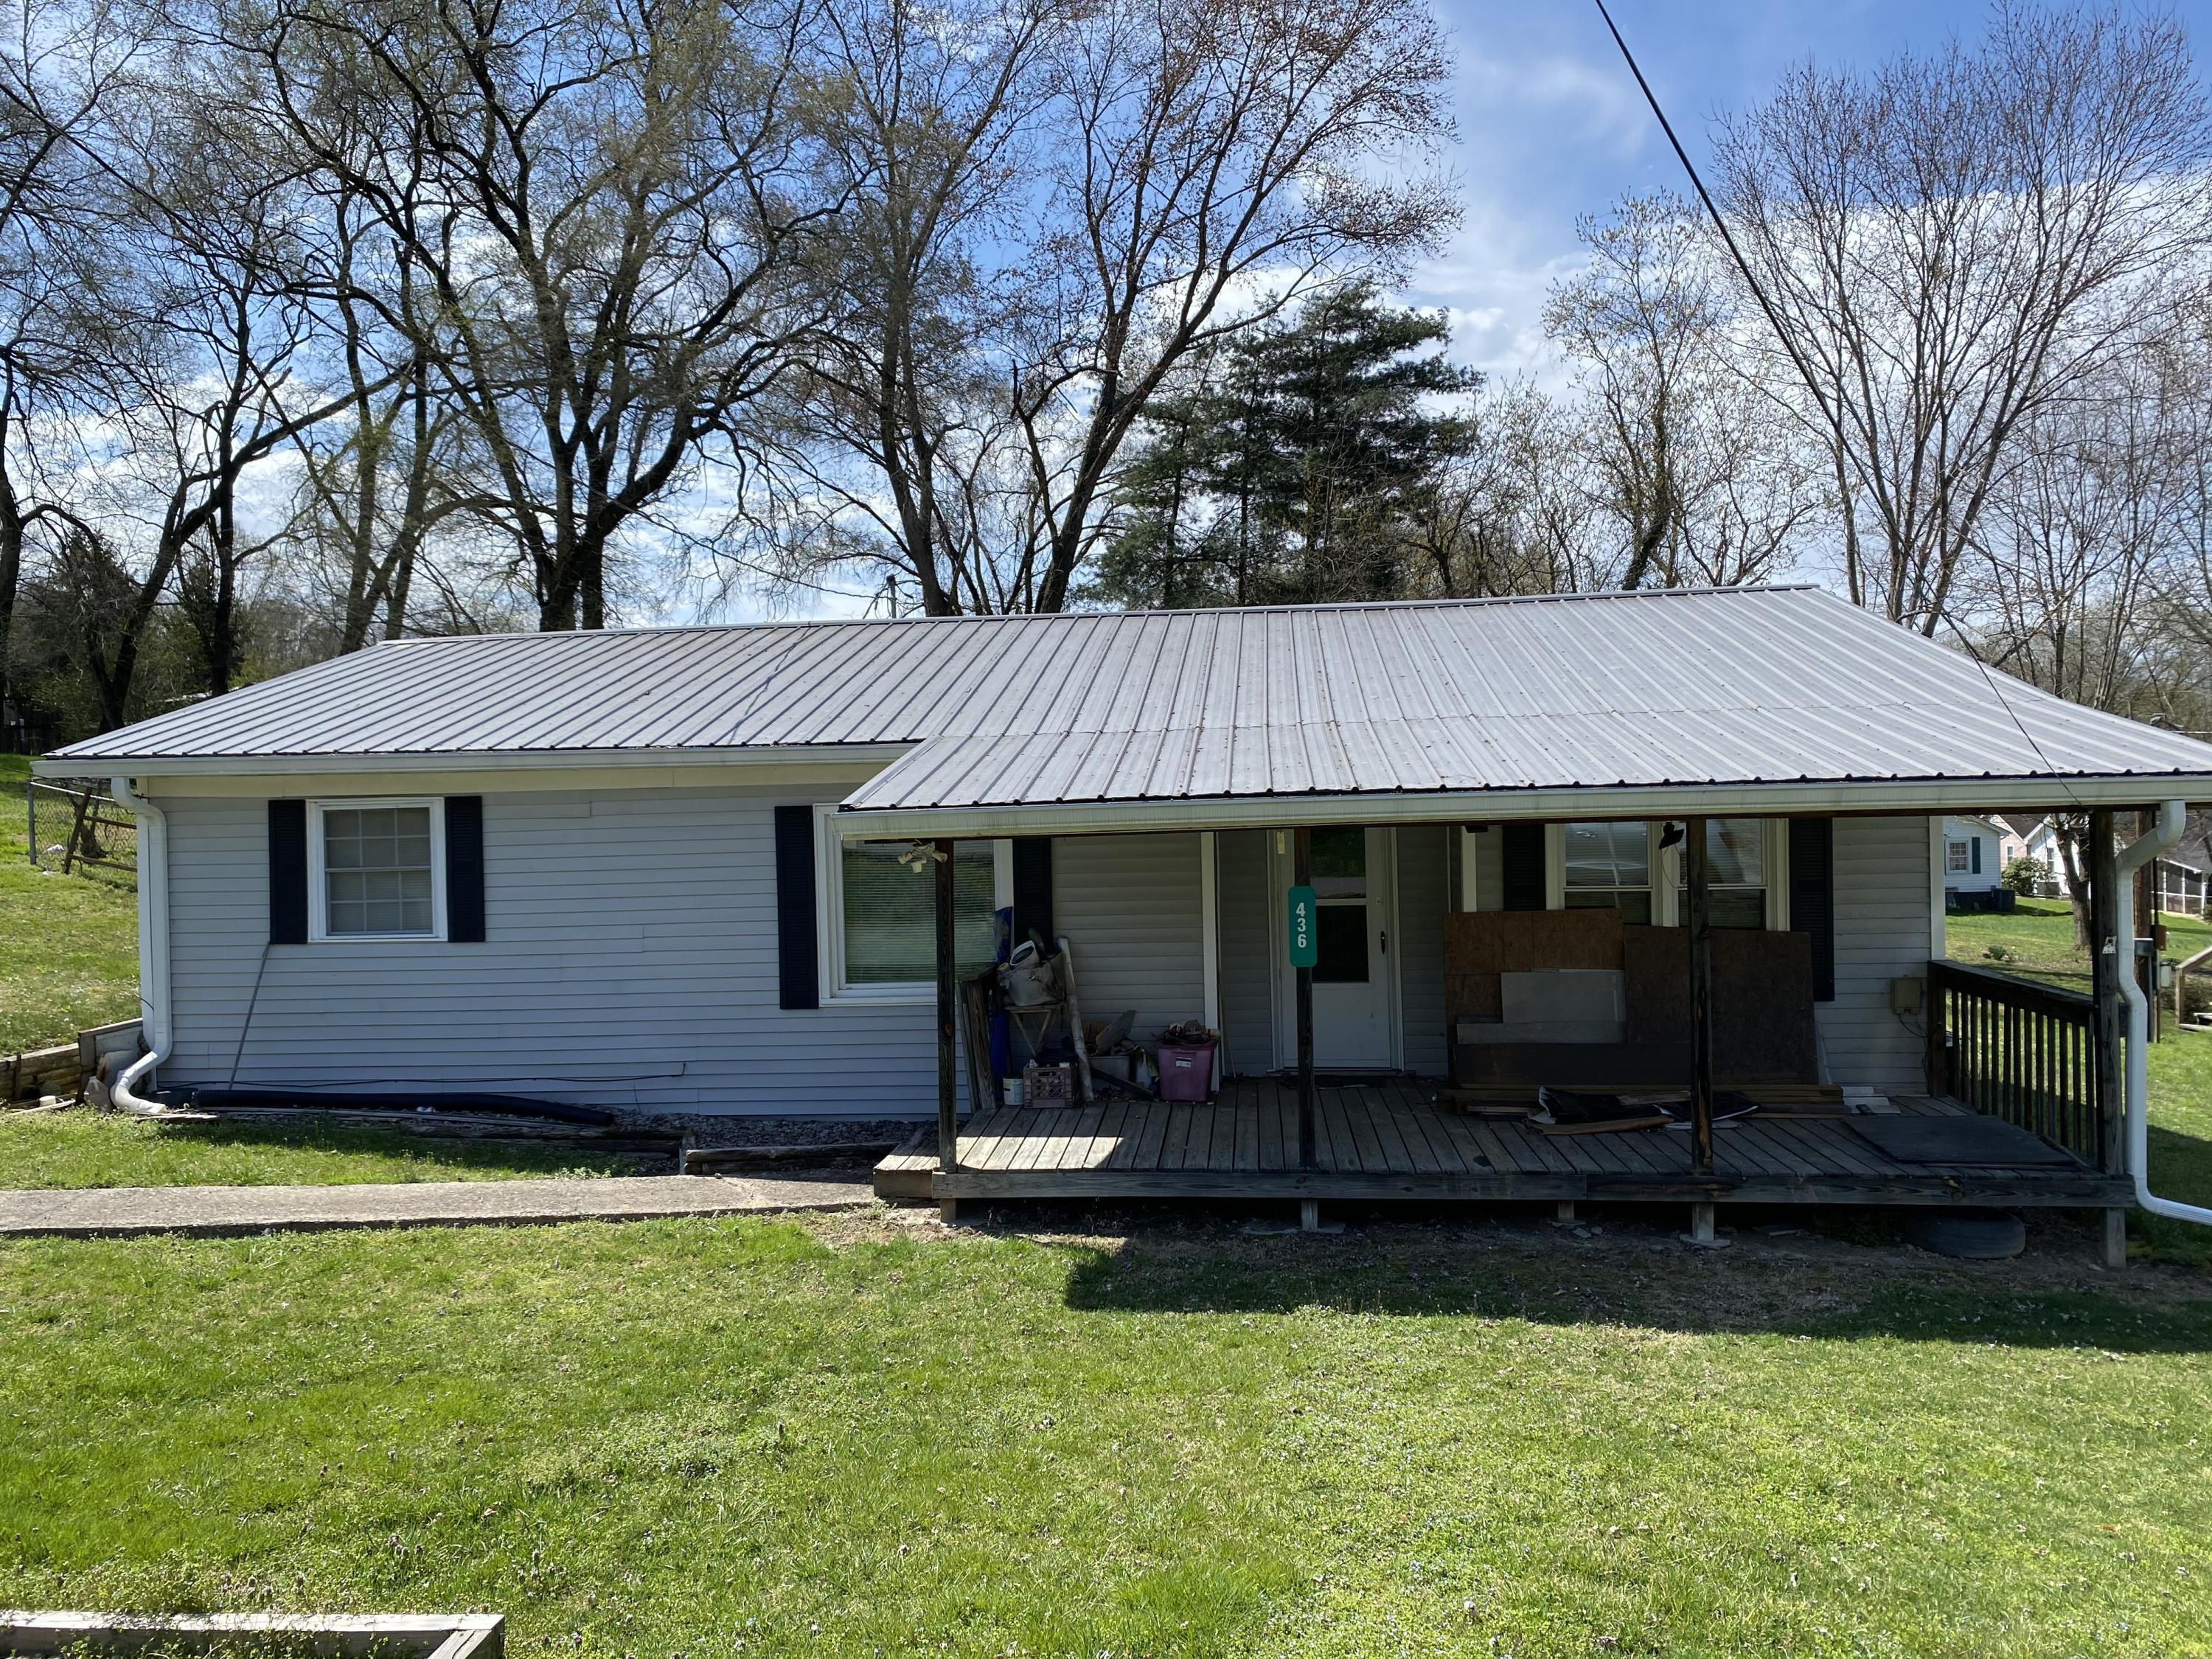 436 Archcrest Street, Kingsport, Tennessee 37664, 3 Bedrooms Bedrooms, ,1 BathroomBathrooms,Single Family,For Sale,436 Archcrest Street,9920279